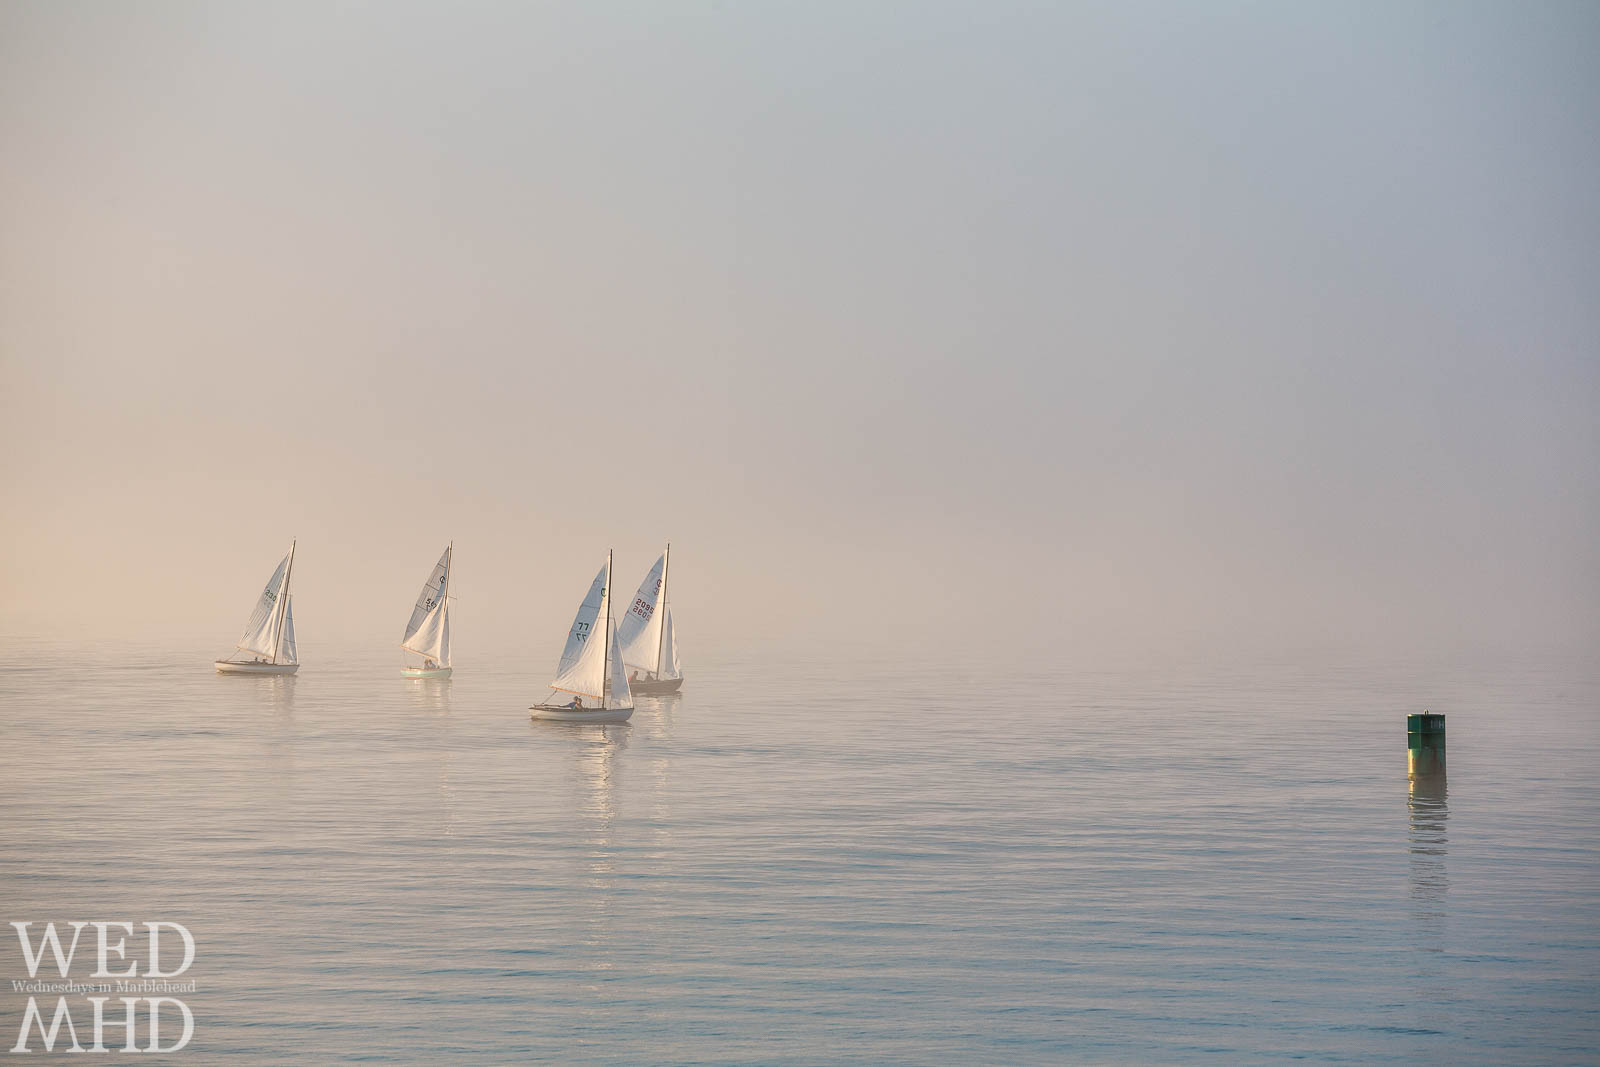 Fine art photograph of town class boats racing toward the MH1 marker in Marblehead Harbor